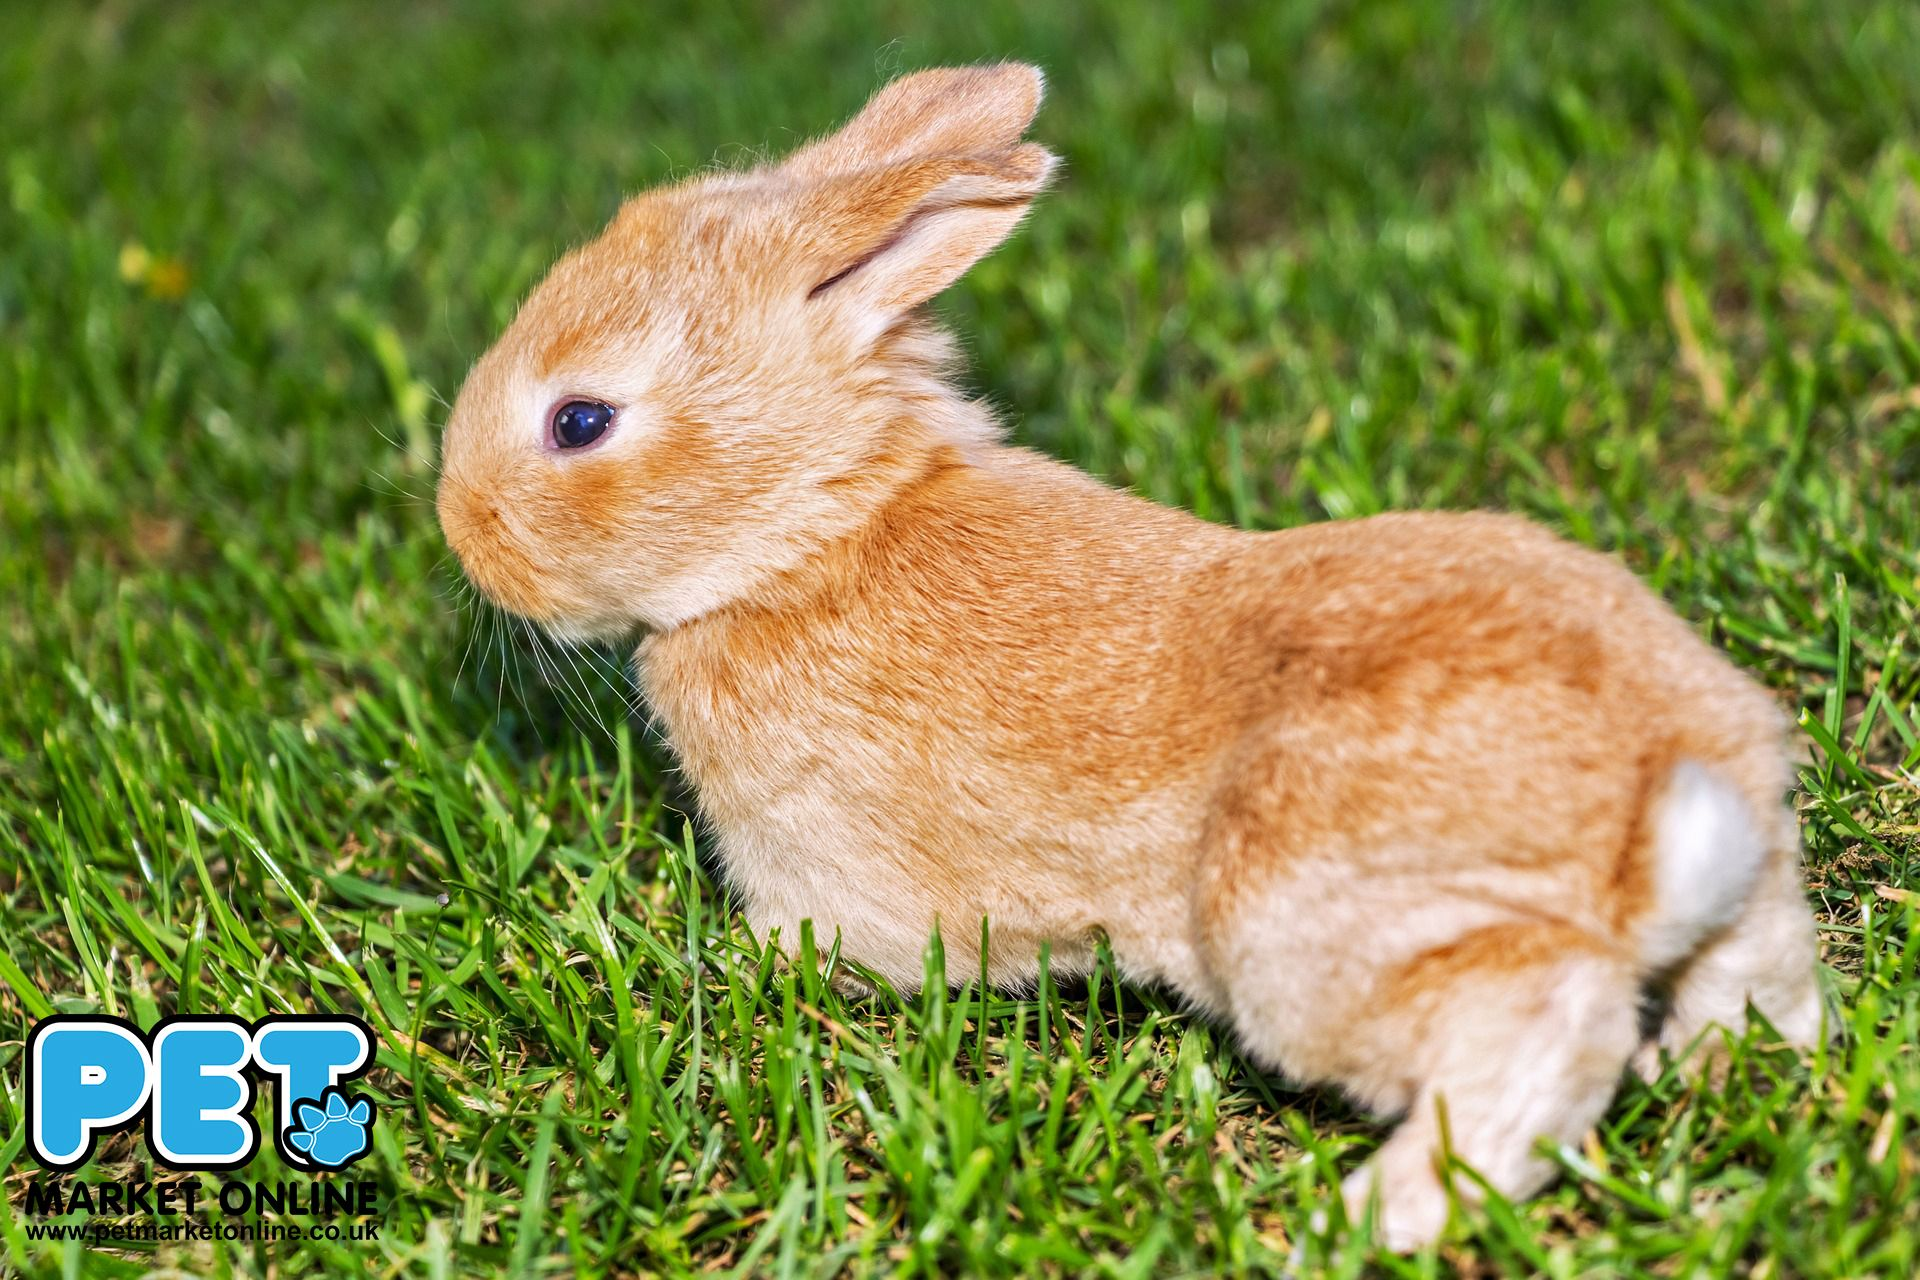 check out new rabbit hutch. I am sure that this fluffy #rabbit would love it!  http://www.petmarketonline.co.uk/rabbit-products/chicken-coop-rabbit-hutch-h8-125.html